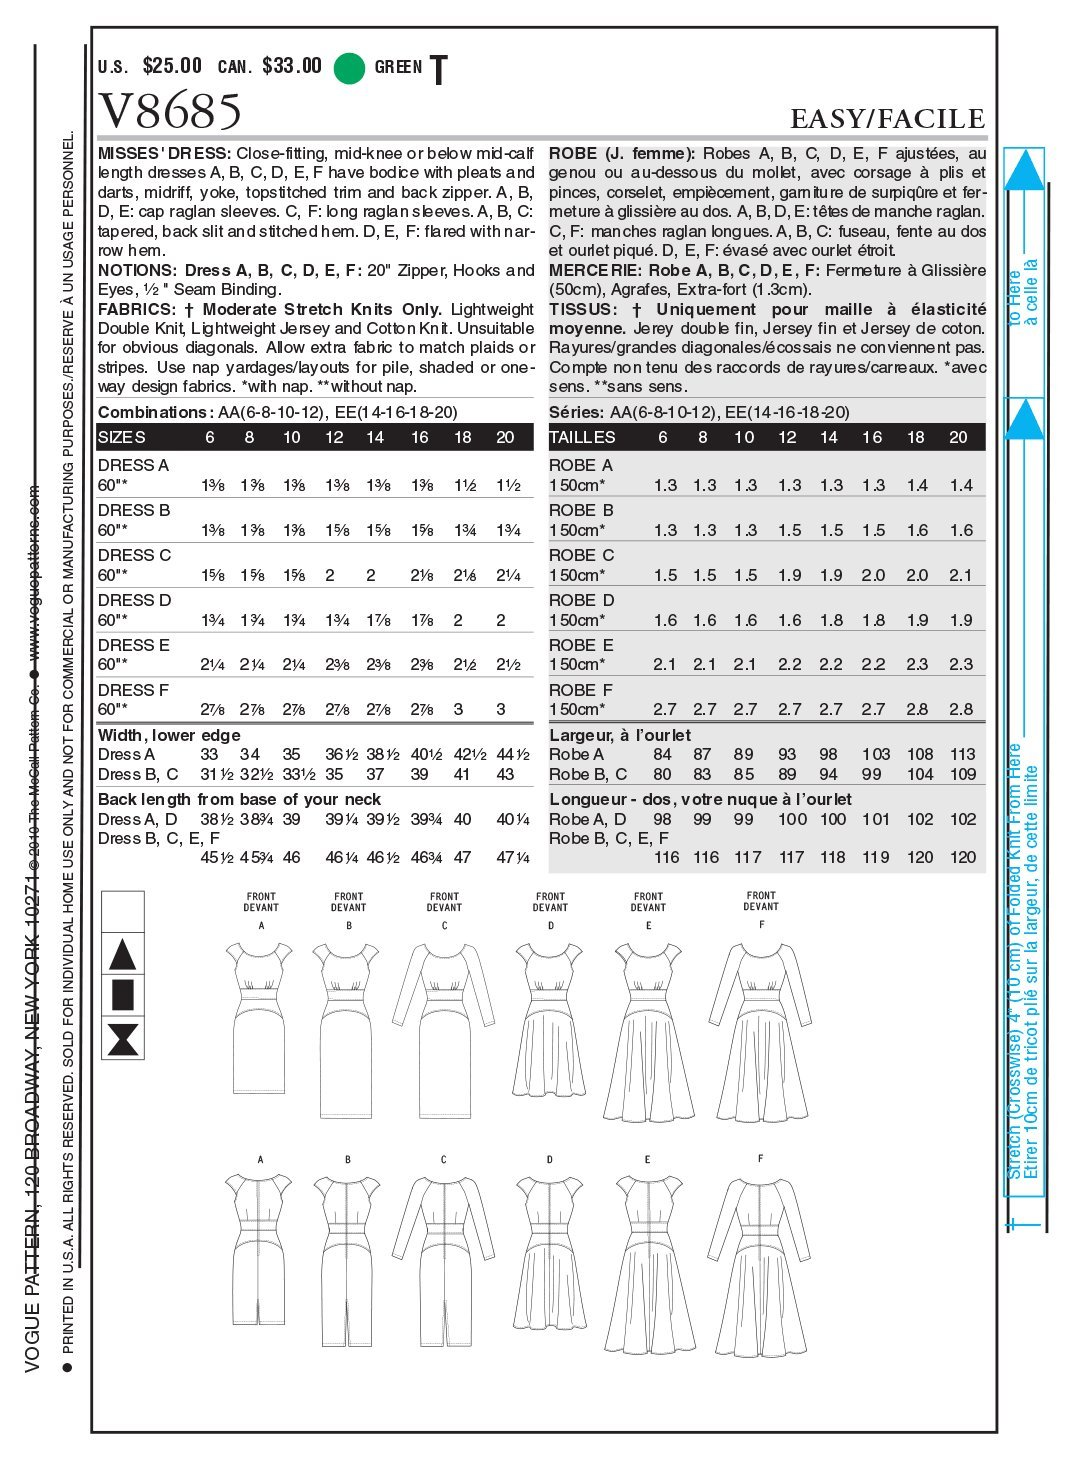 Vogue Patterns V8685 - Patrones de costura para vestidos de mujer ...